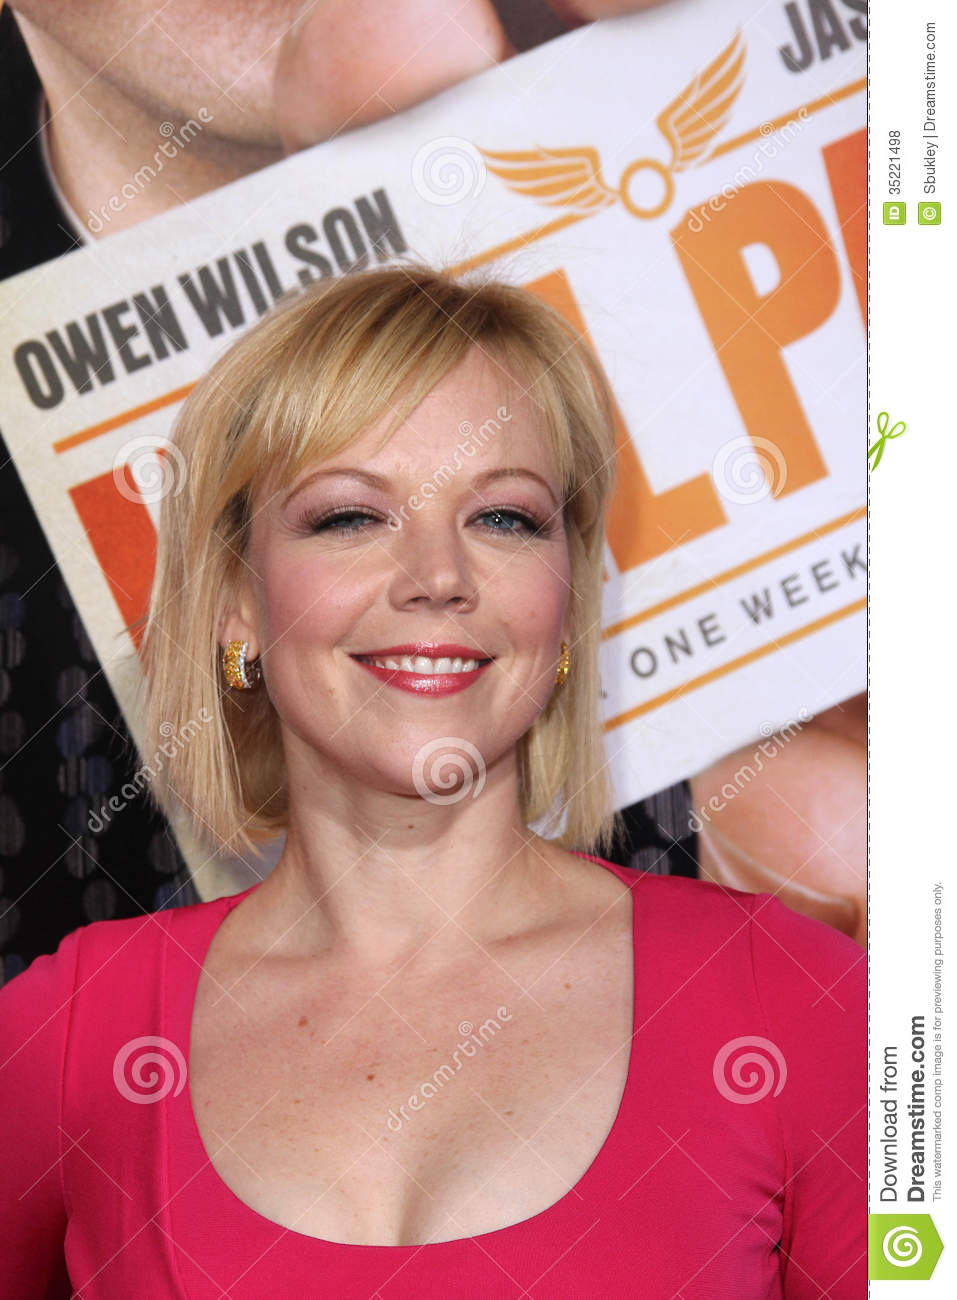 emily bergl twitteremily bergl instagram, emily bergl, emily bergl twitter, emily bergl height, emily bergl imdb, emily bergl husband, emily bergl grey's anatomy, emily bergl interview, emily bergl carrie 2, emily bergl net worth, emily bergl filmographie, emily bergl married, emily bergl hot